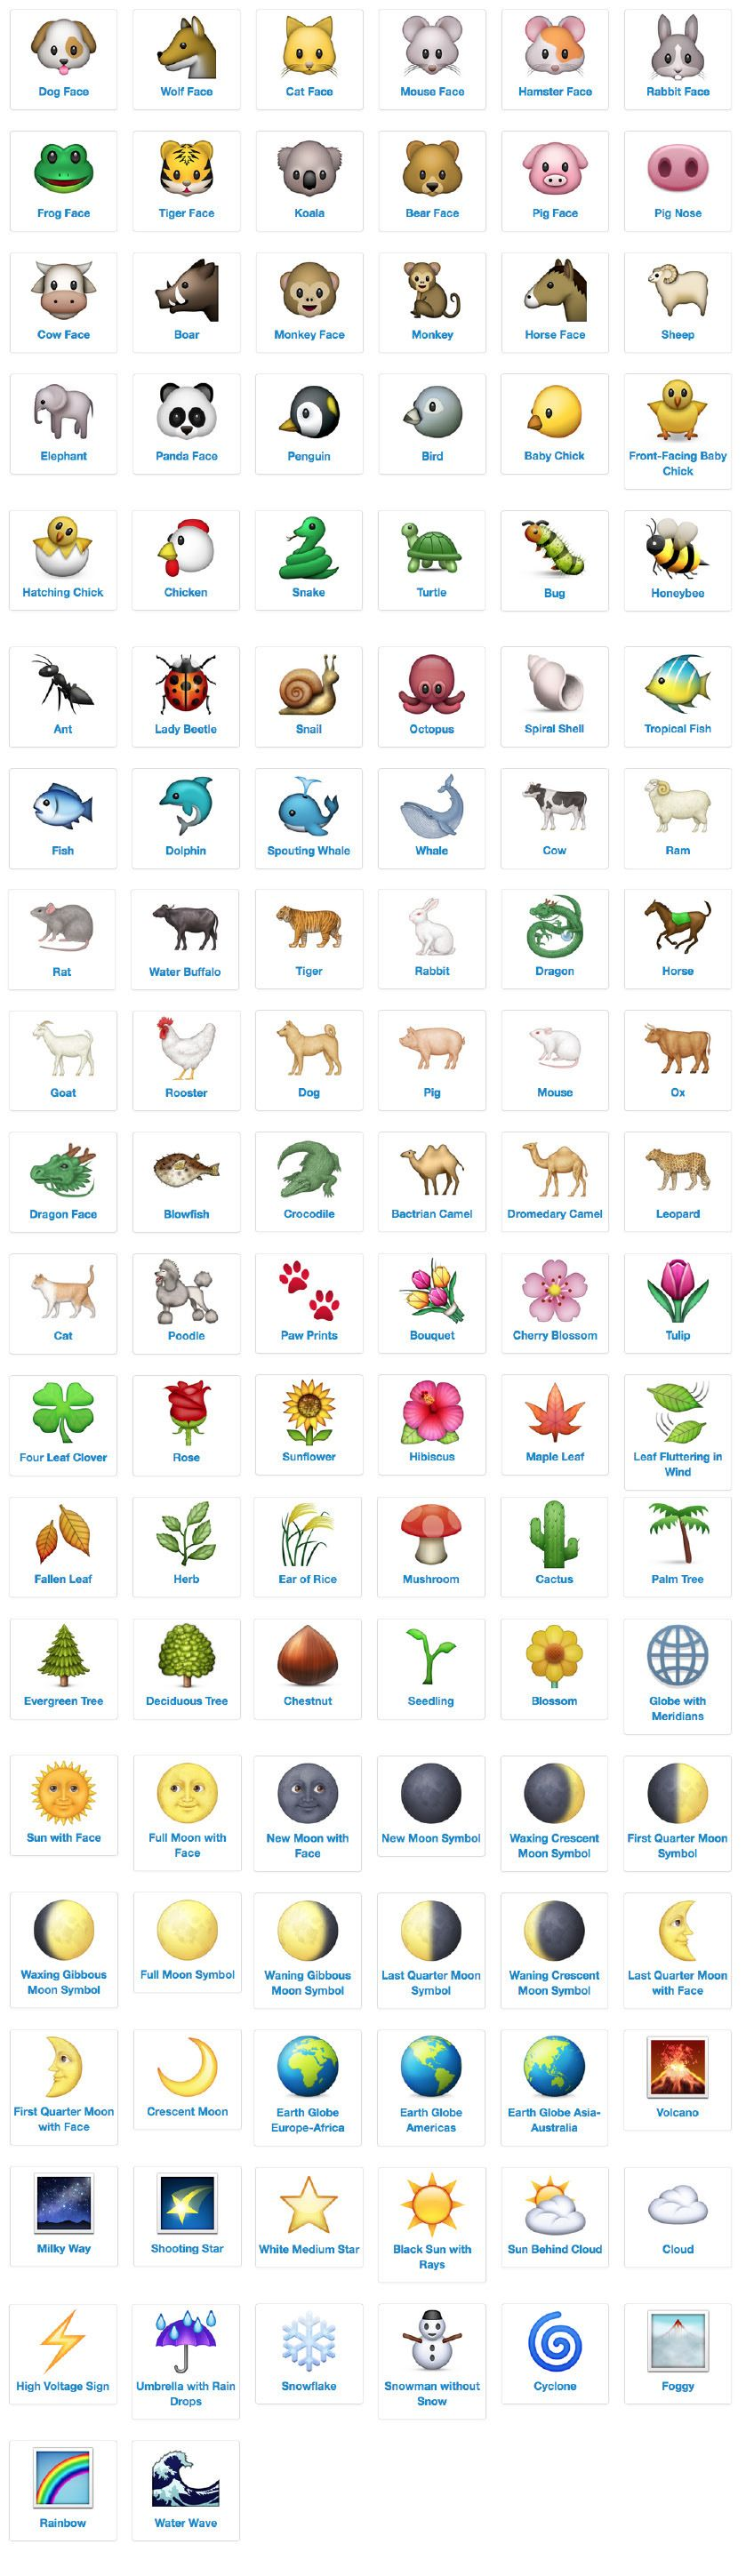 Emoji icon list nature and animals with meanings and definitions emoji icon list nature and animals with meanings and definitions biocorpaavc Gallery